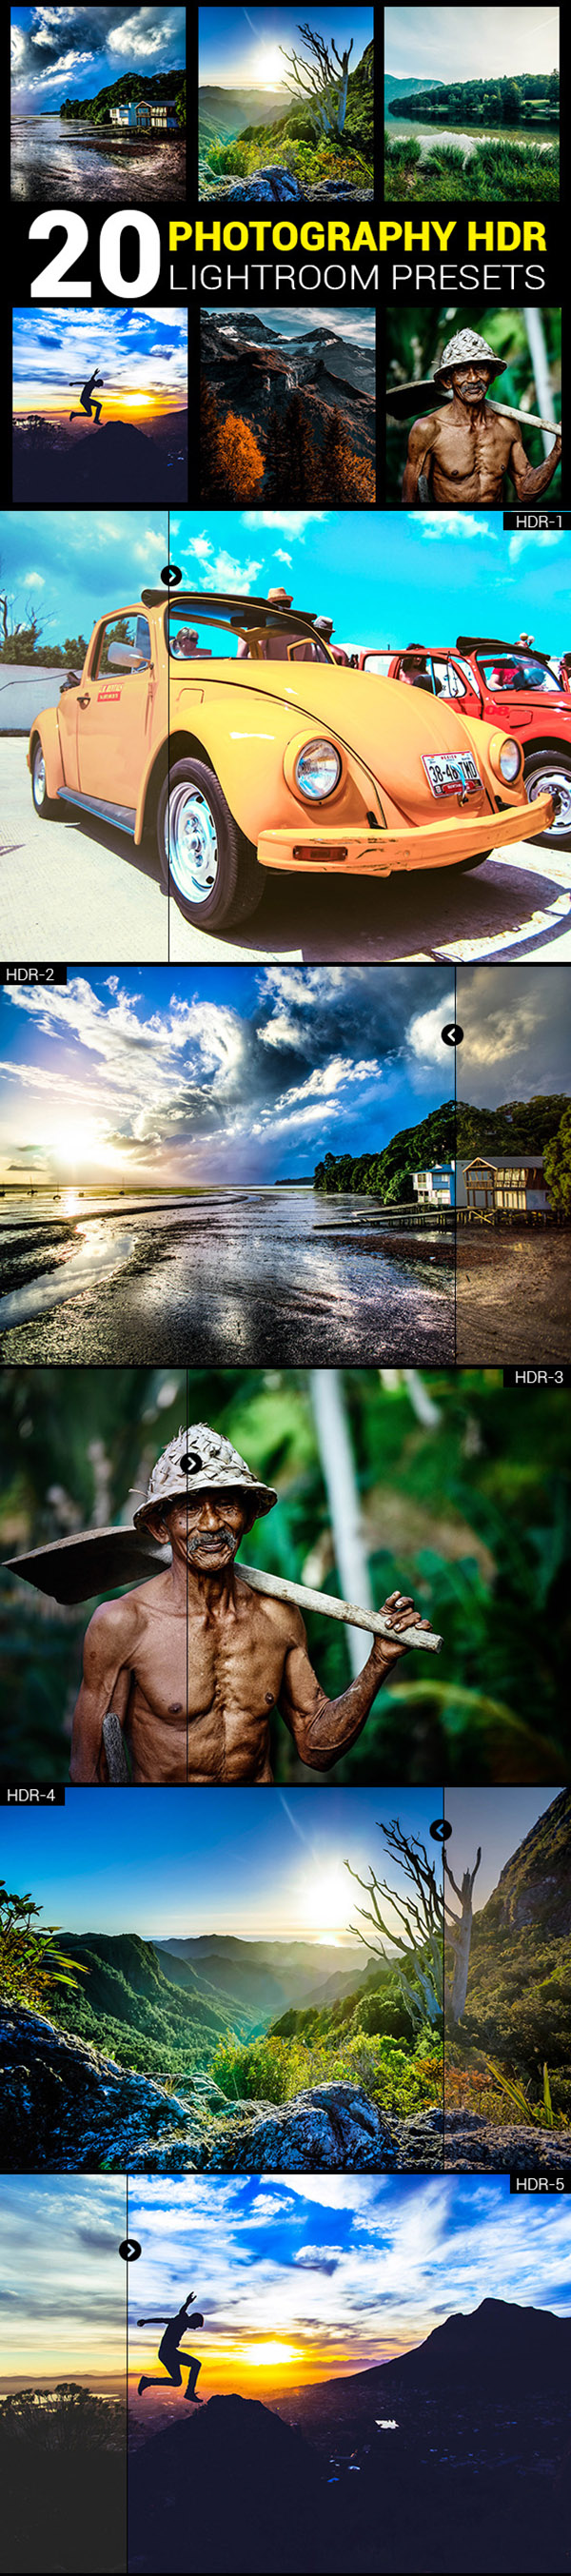 05 20 Photography HDR lightroom presets